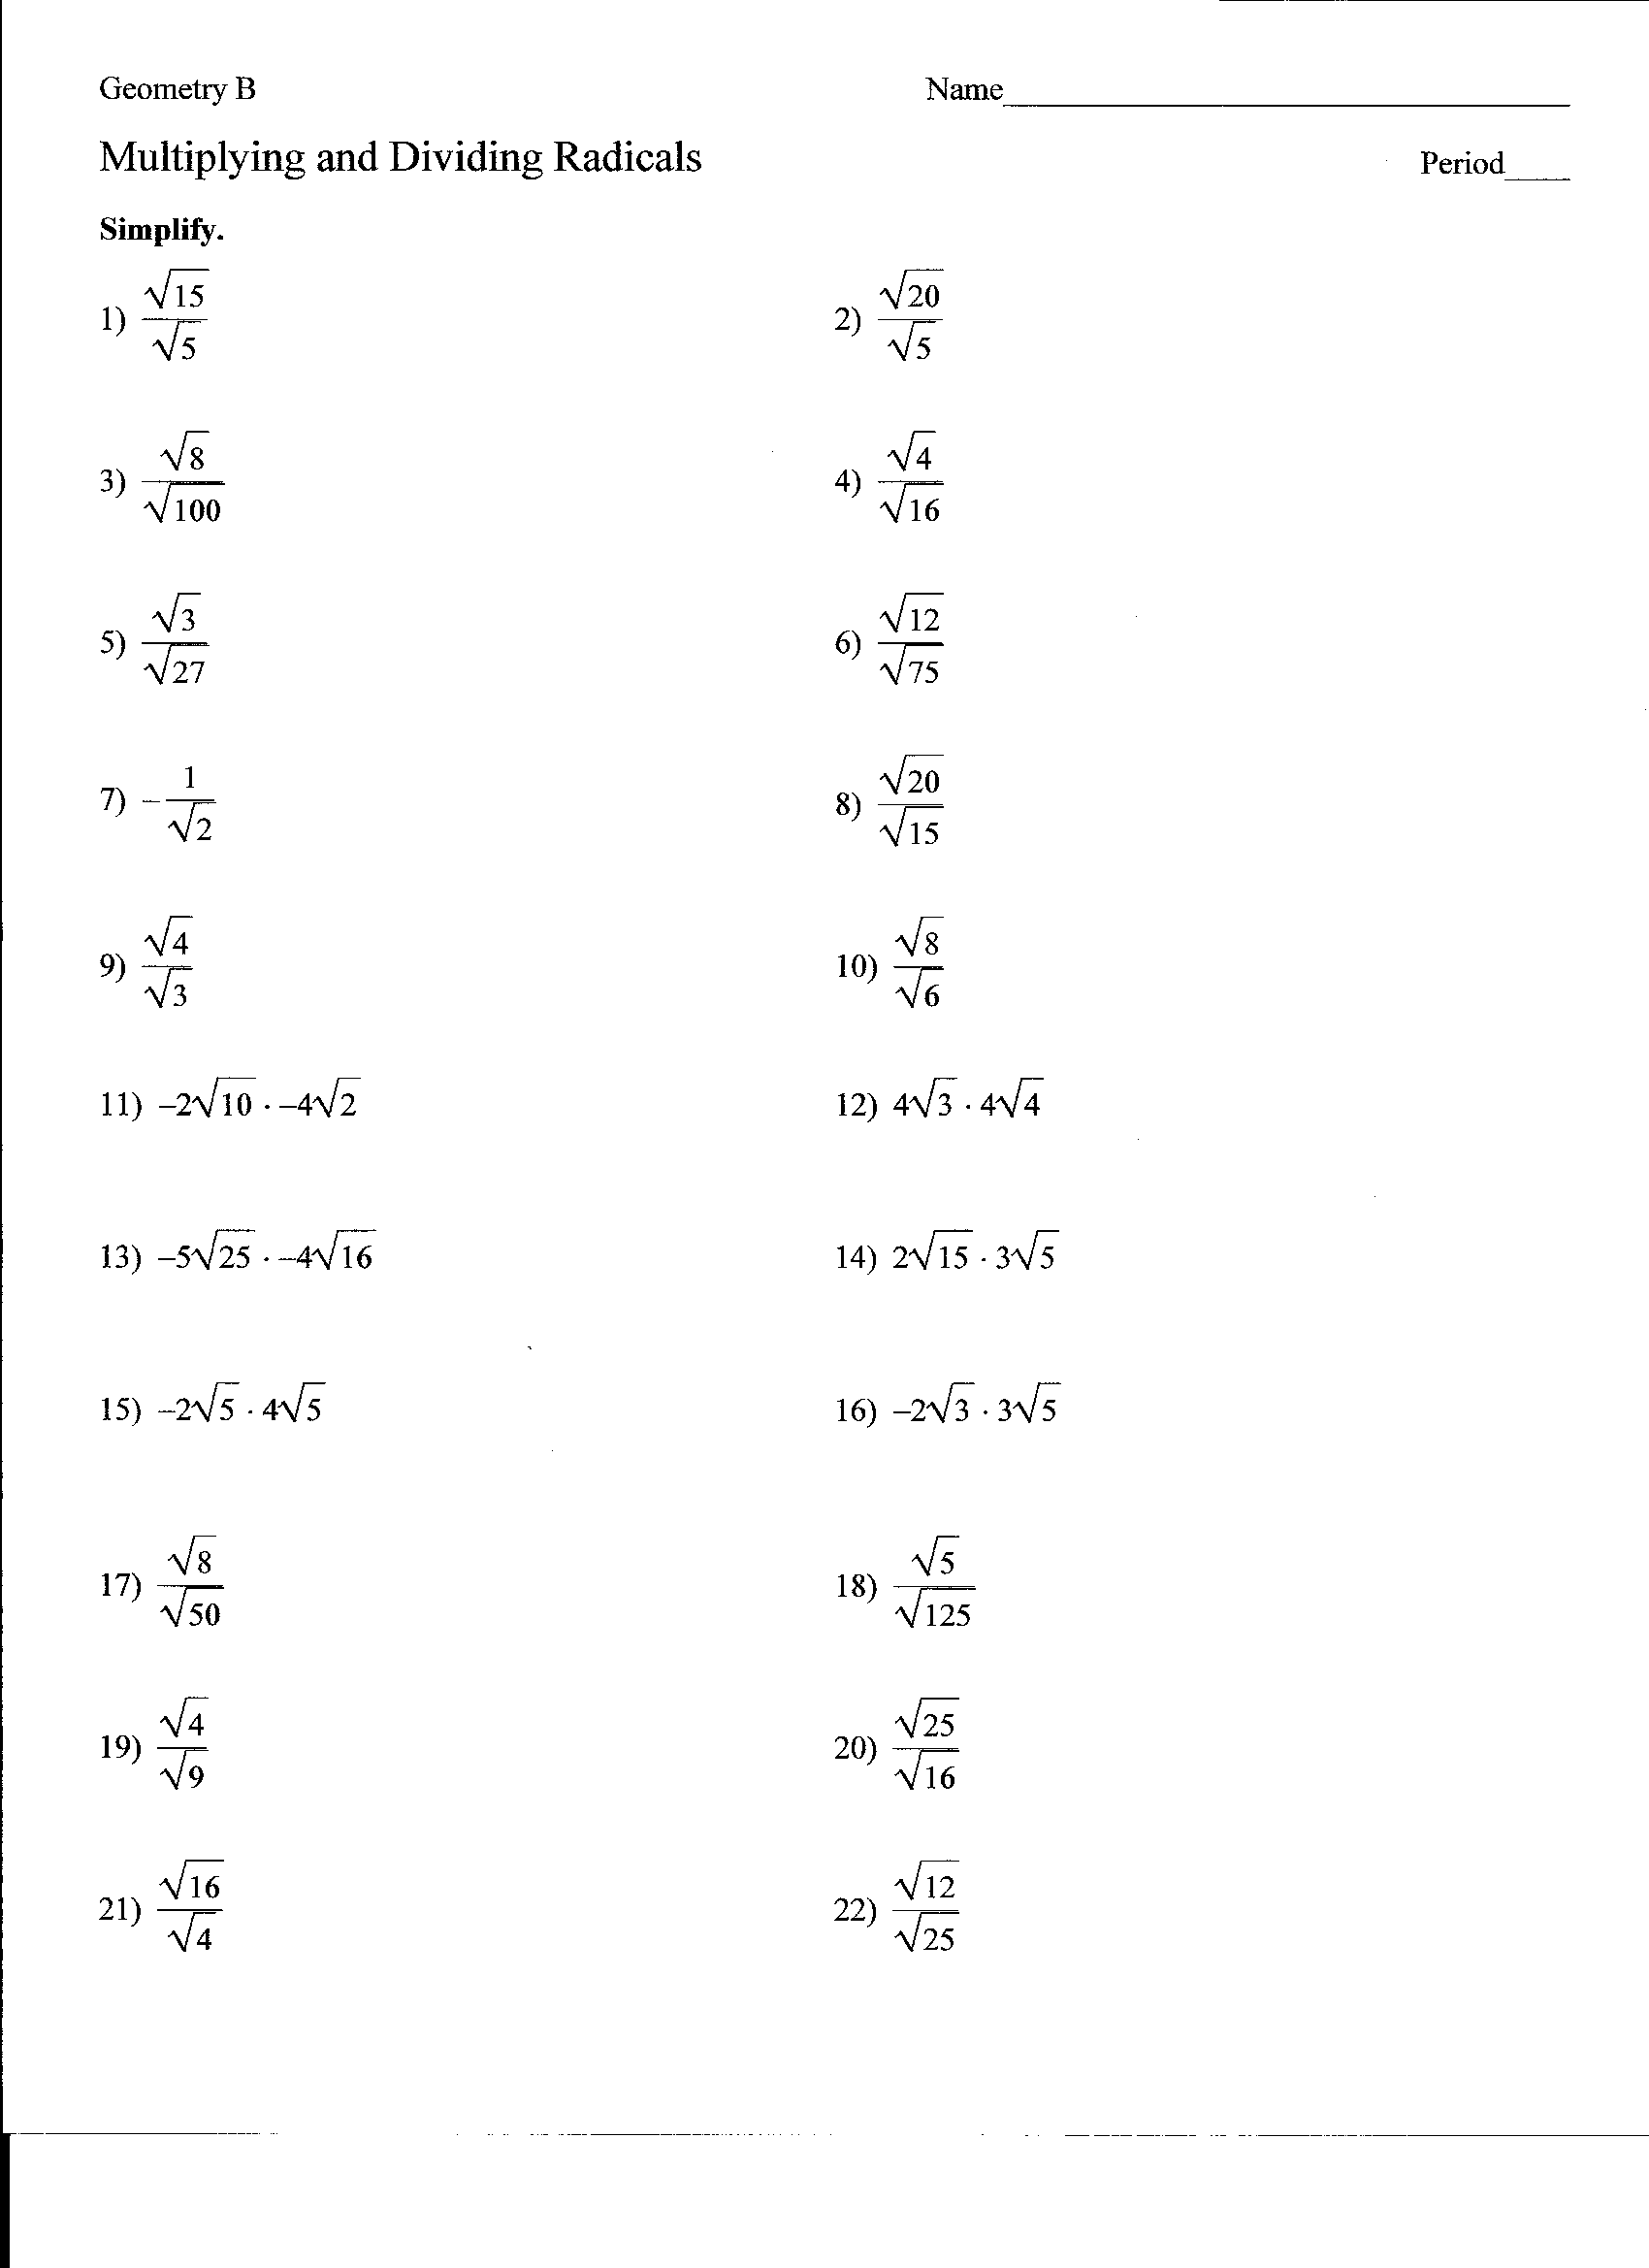 31 Adding Subtracting And Multiplying Radicals Worksheet